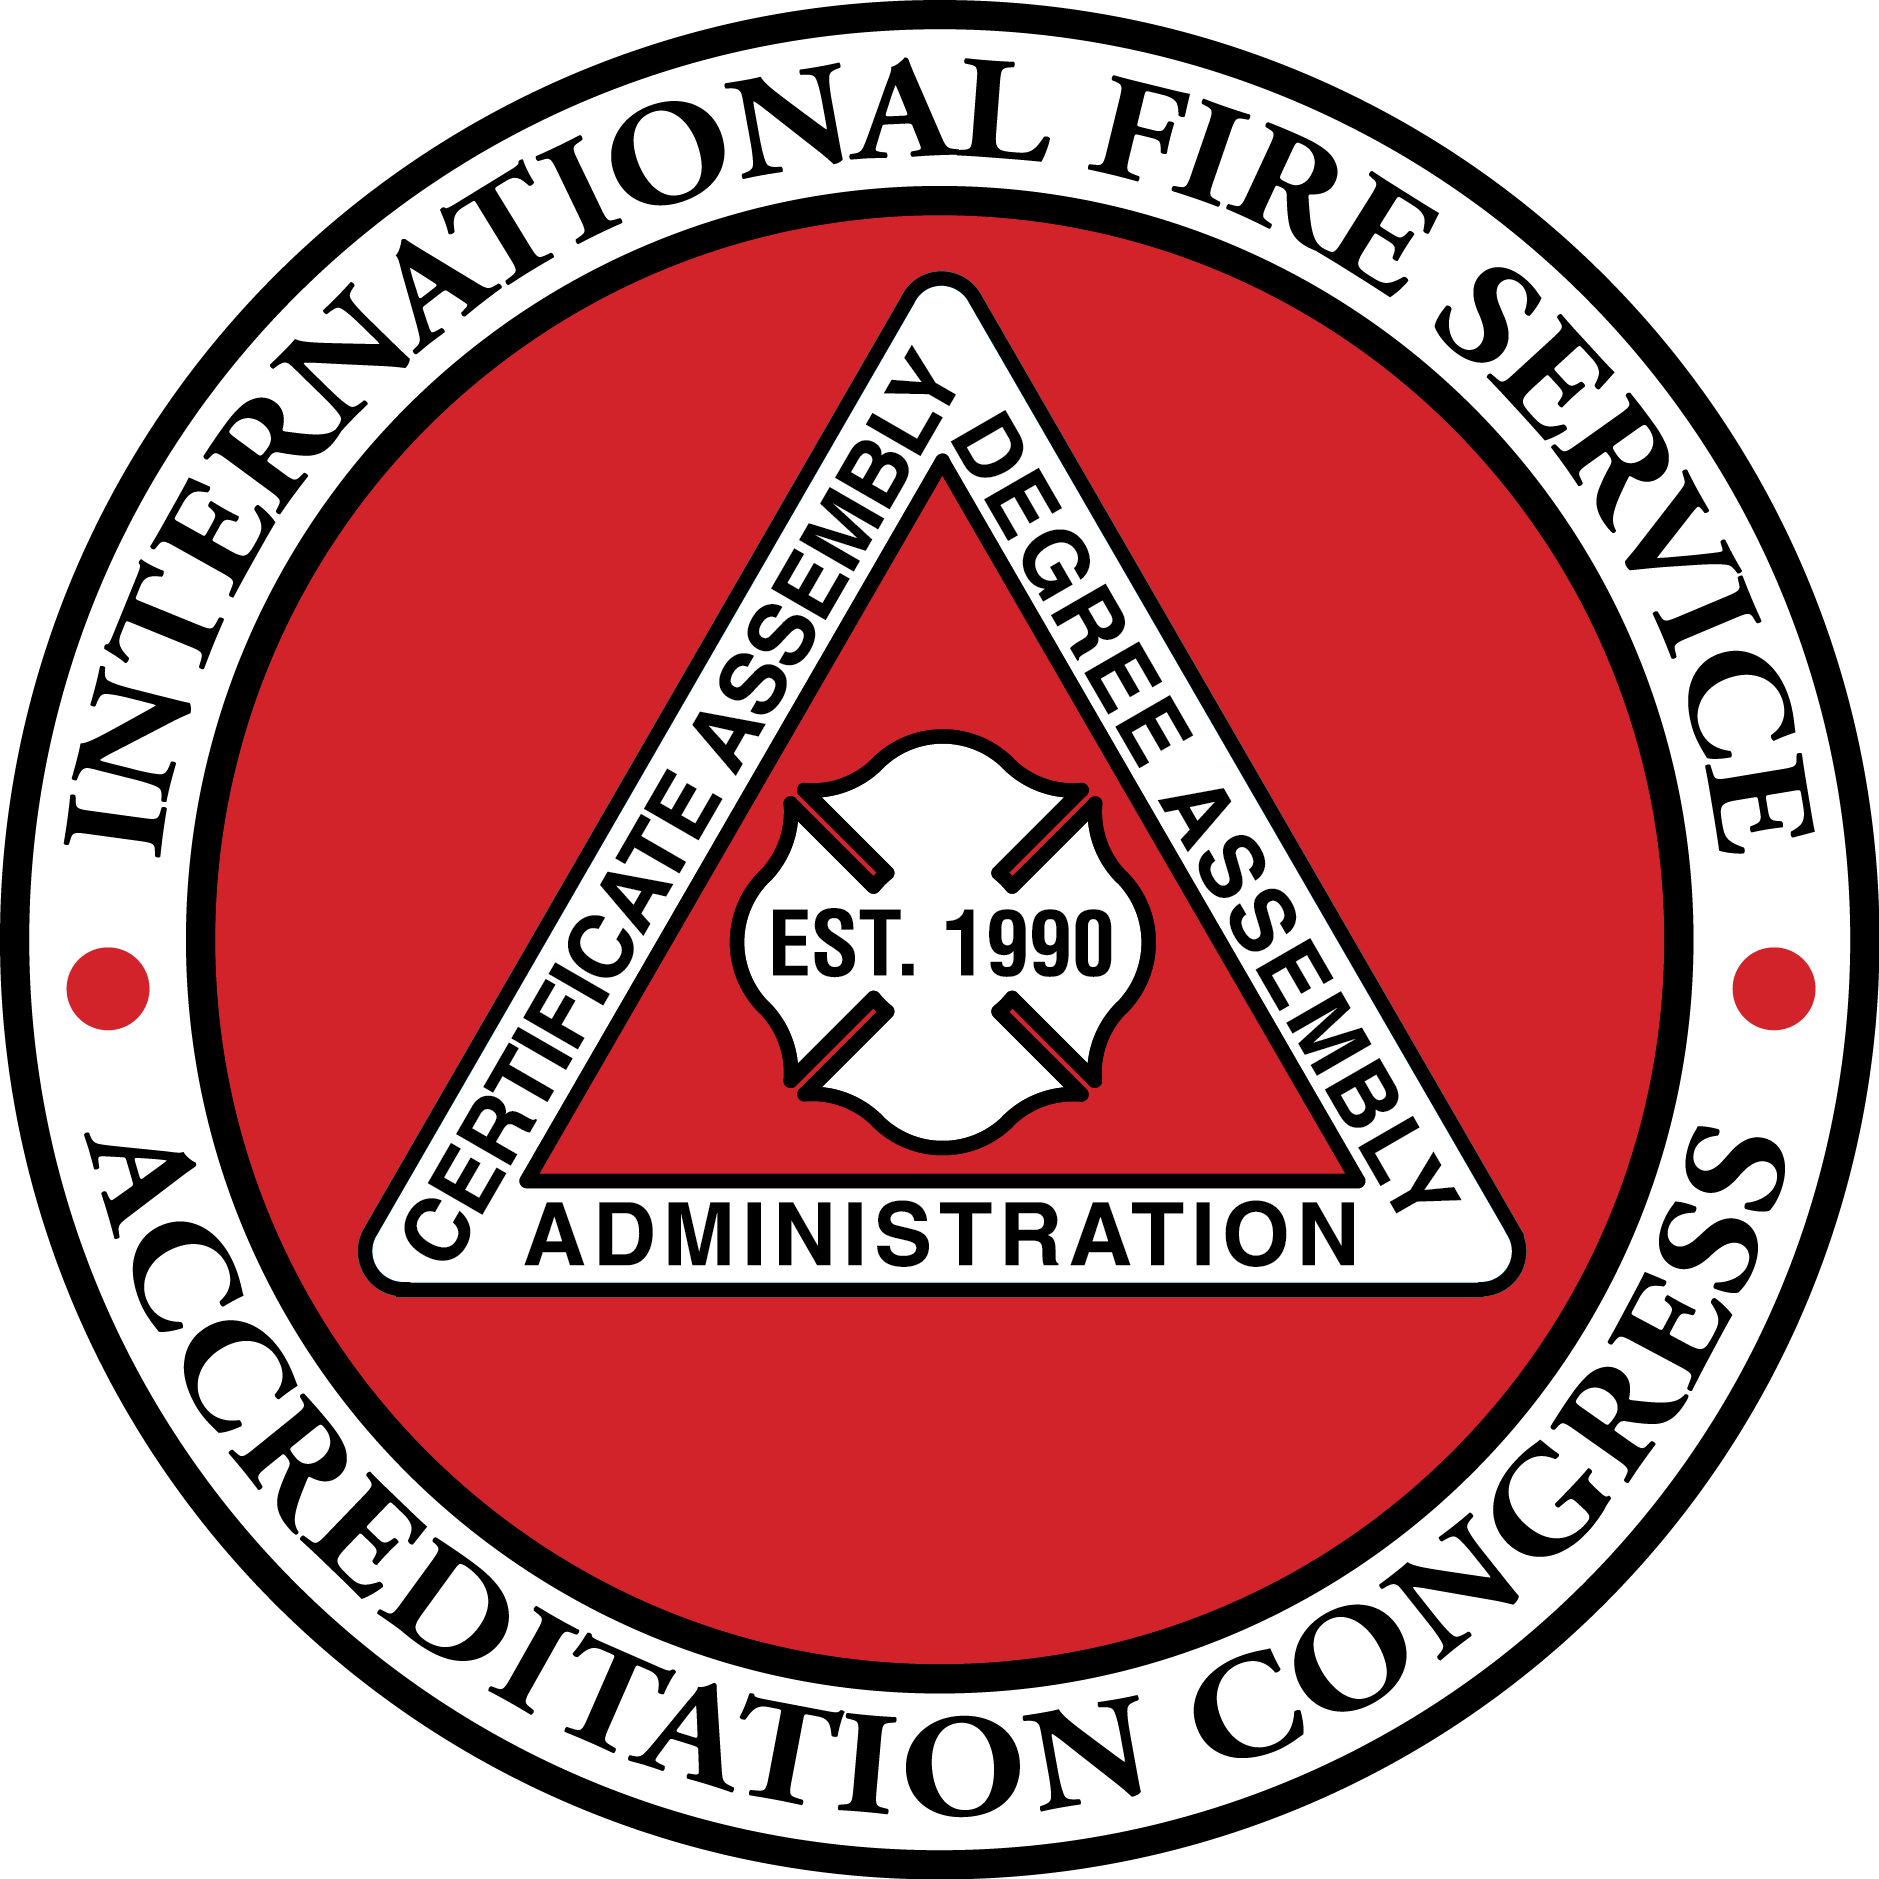 International Fire Service Accreditation Council